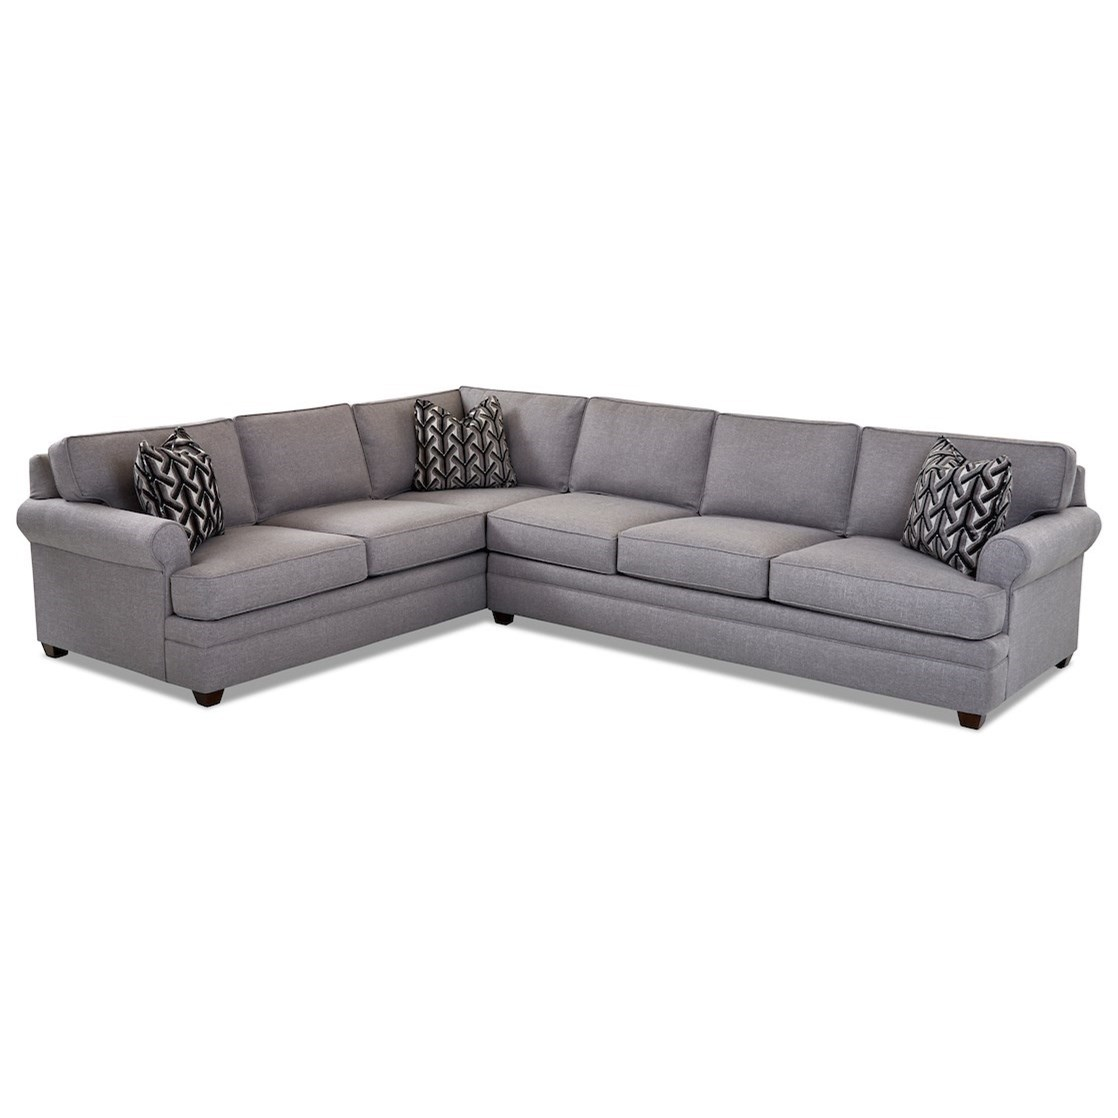 Living Your Way 2-Piece Sectional Sofa w/ RAF Sofa by Klaussner at Northeast Factory Direct